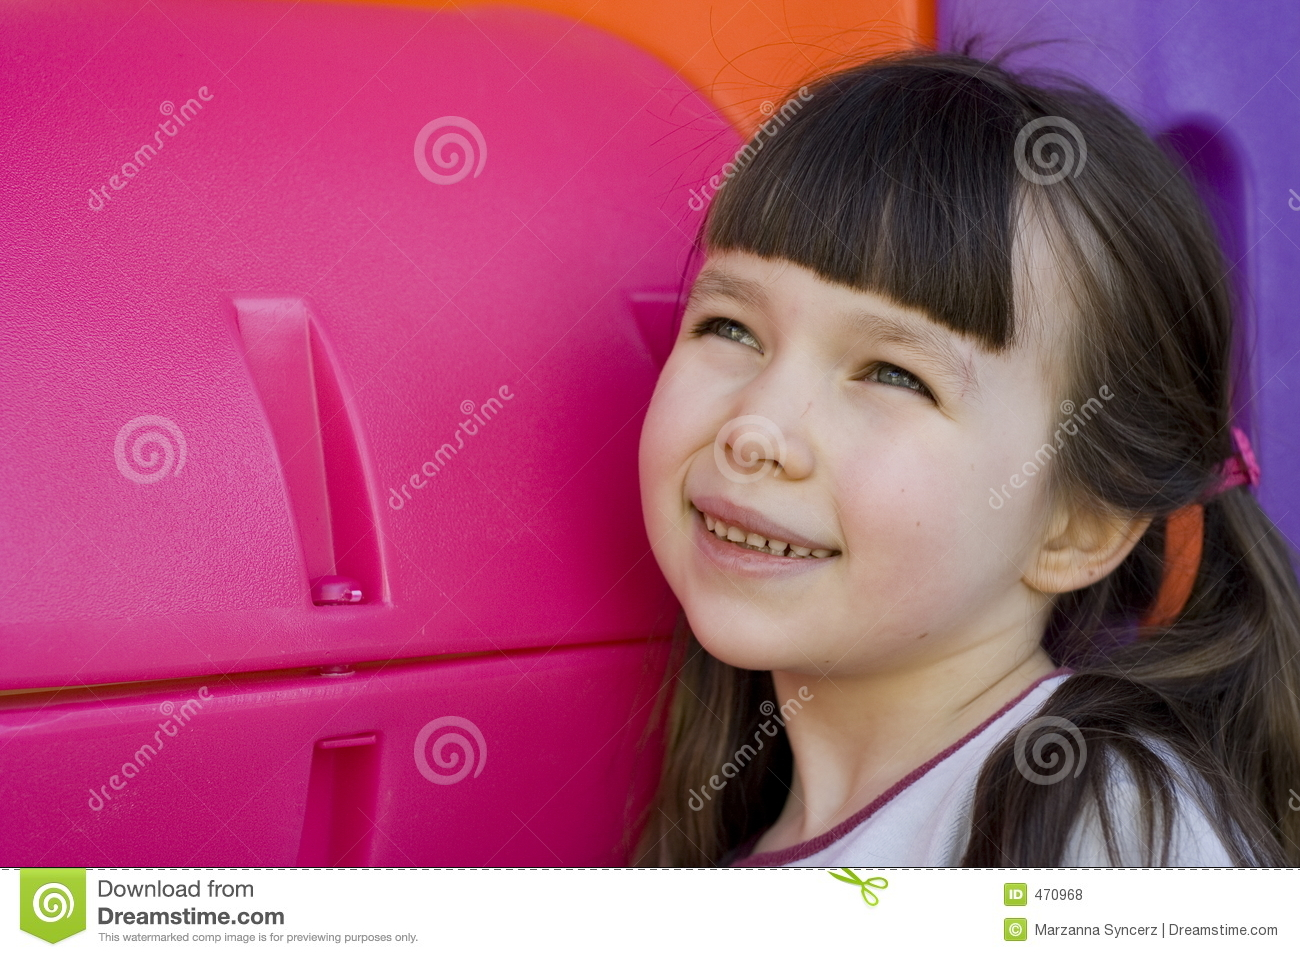 Download Looking Girl In To The Future Stock Photo - Image of lovely, child: 470968